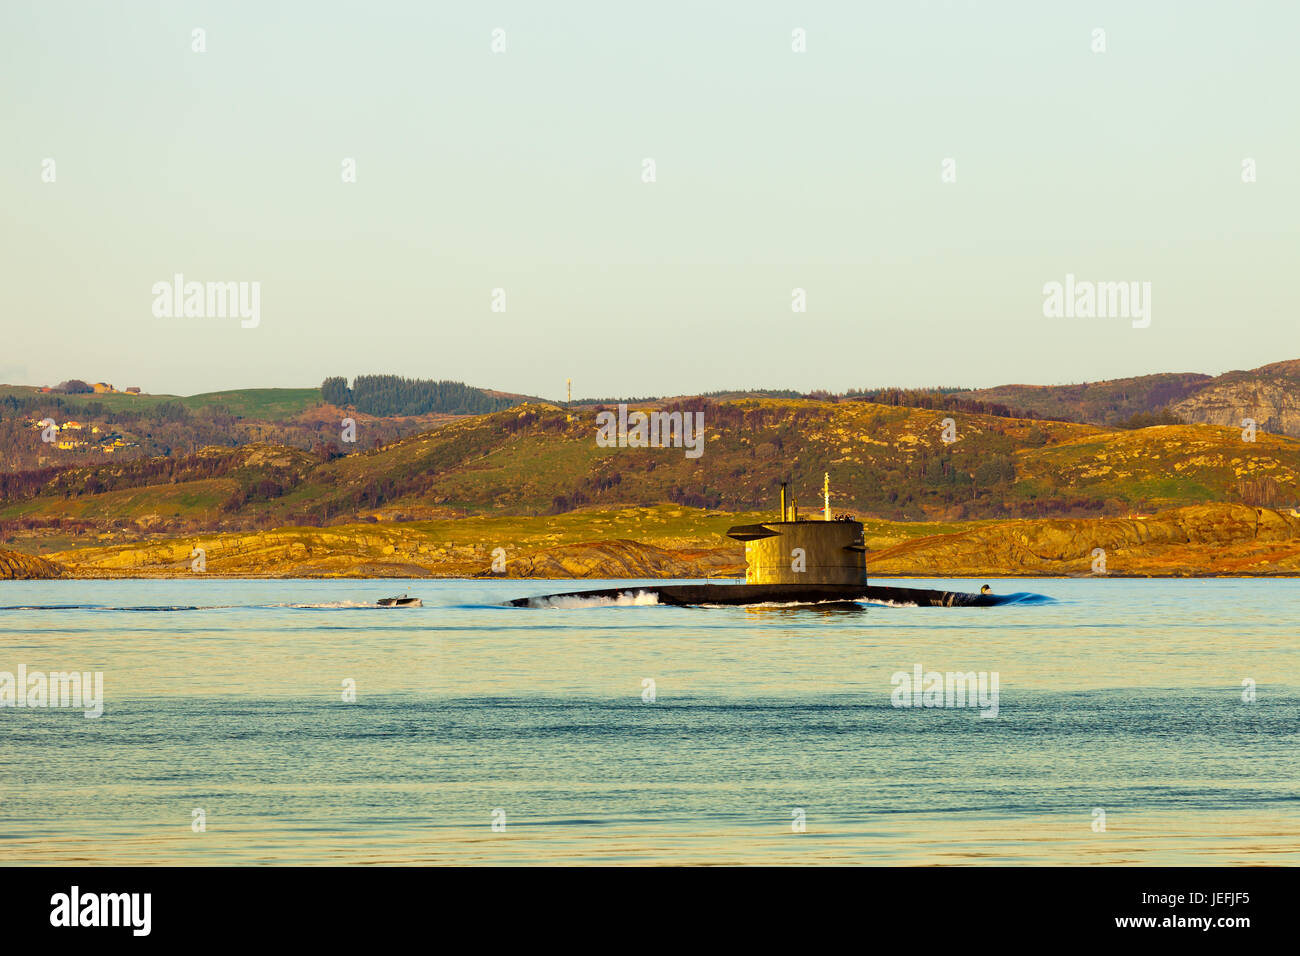 Submarine arriving at port in Norway. - Stock Image